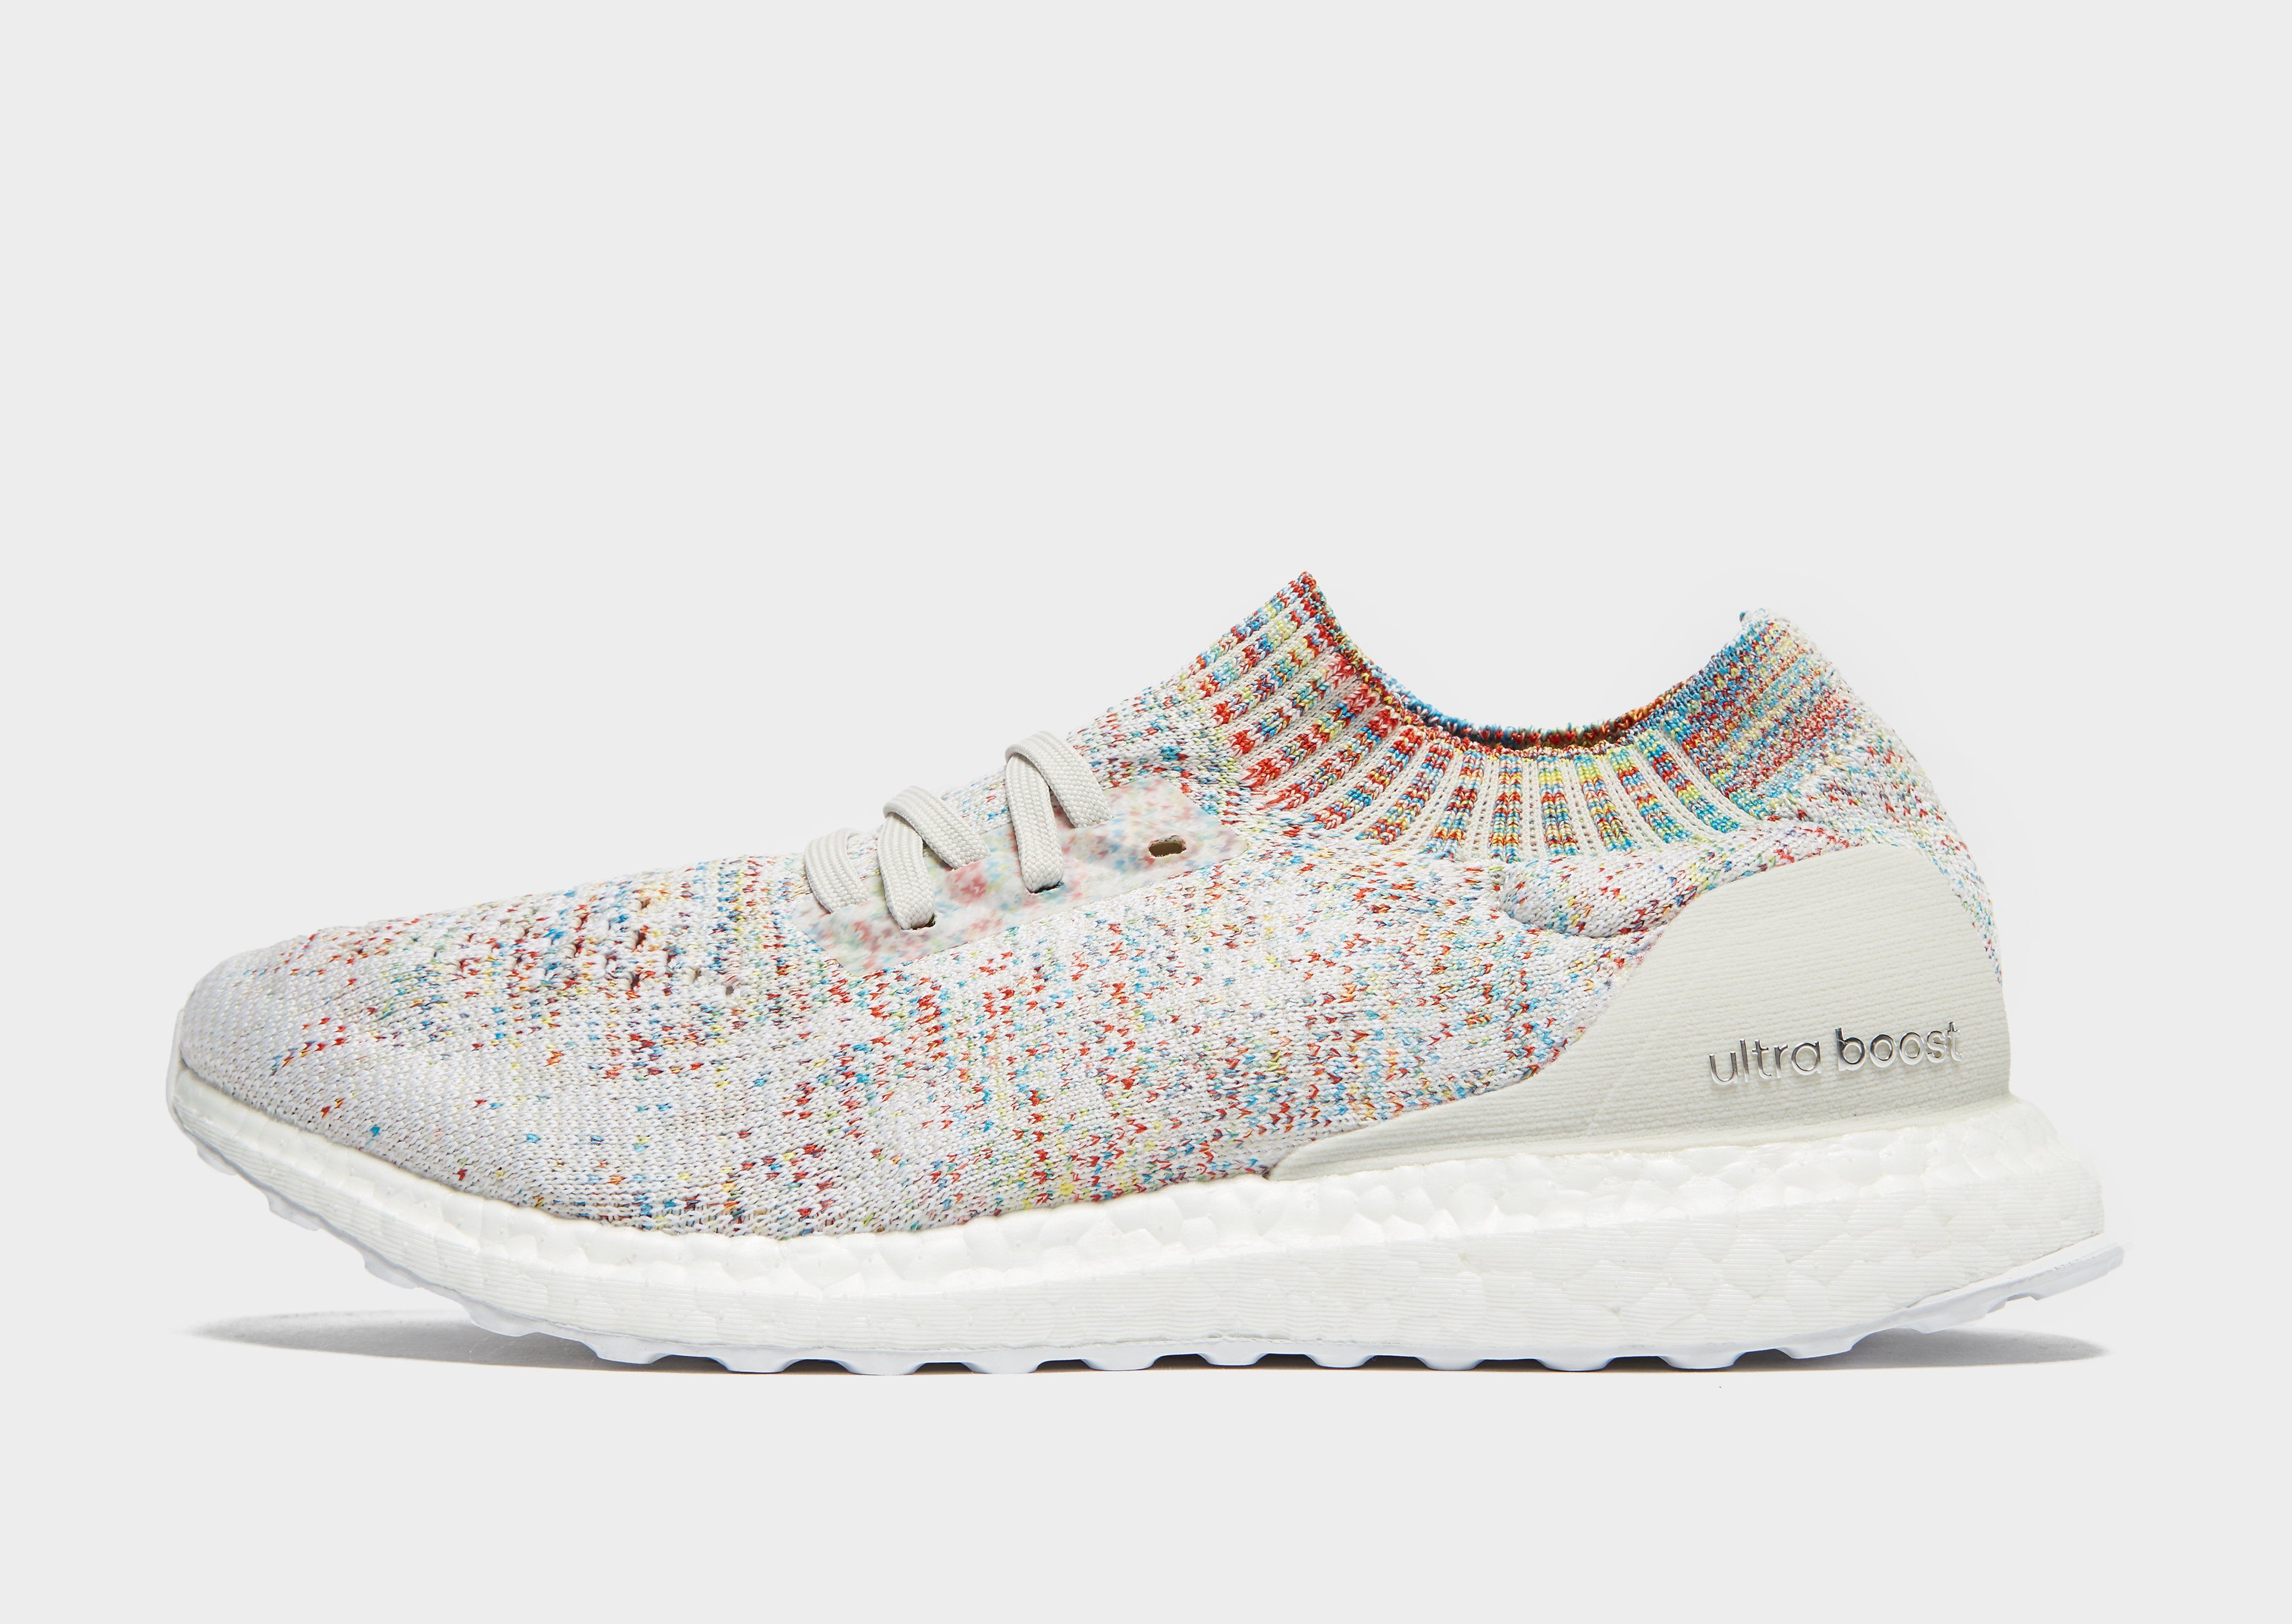 76d1ad73217 adidas Ultra Boost Uncaged